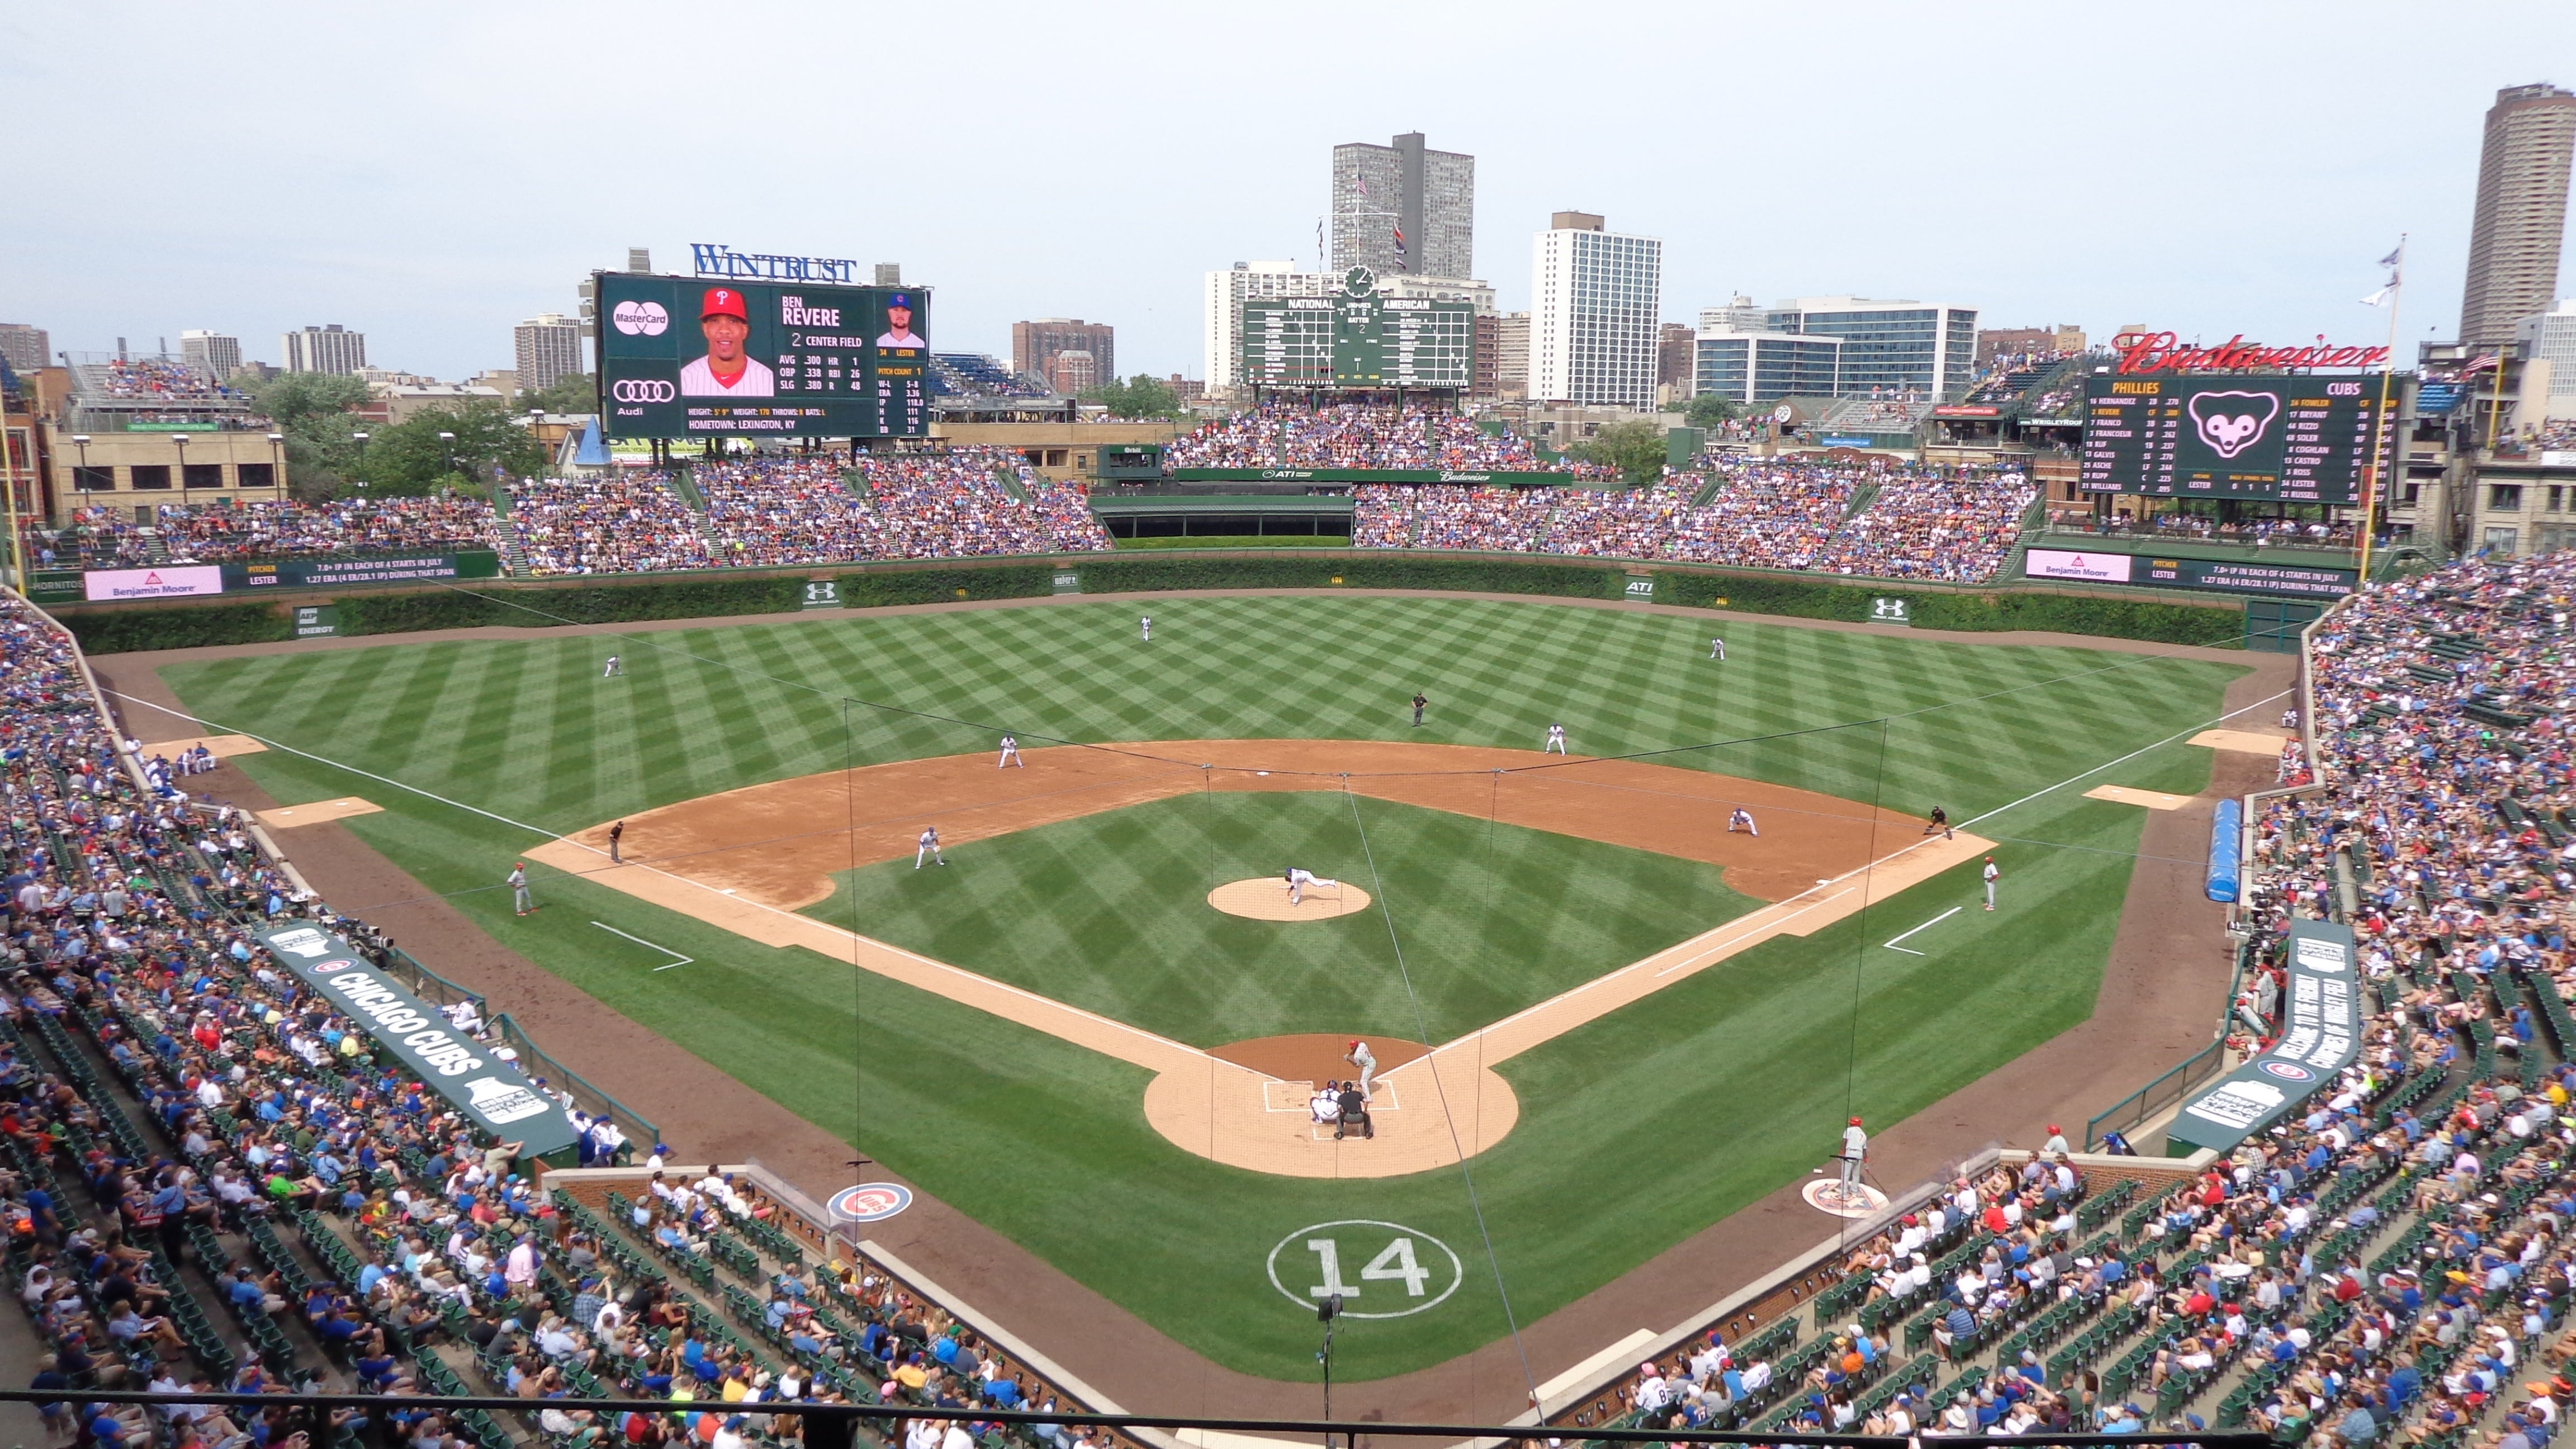 Wrigley Field - Chicago | Tickets, Schedule, Seating Chart, Directions